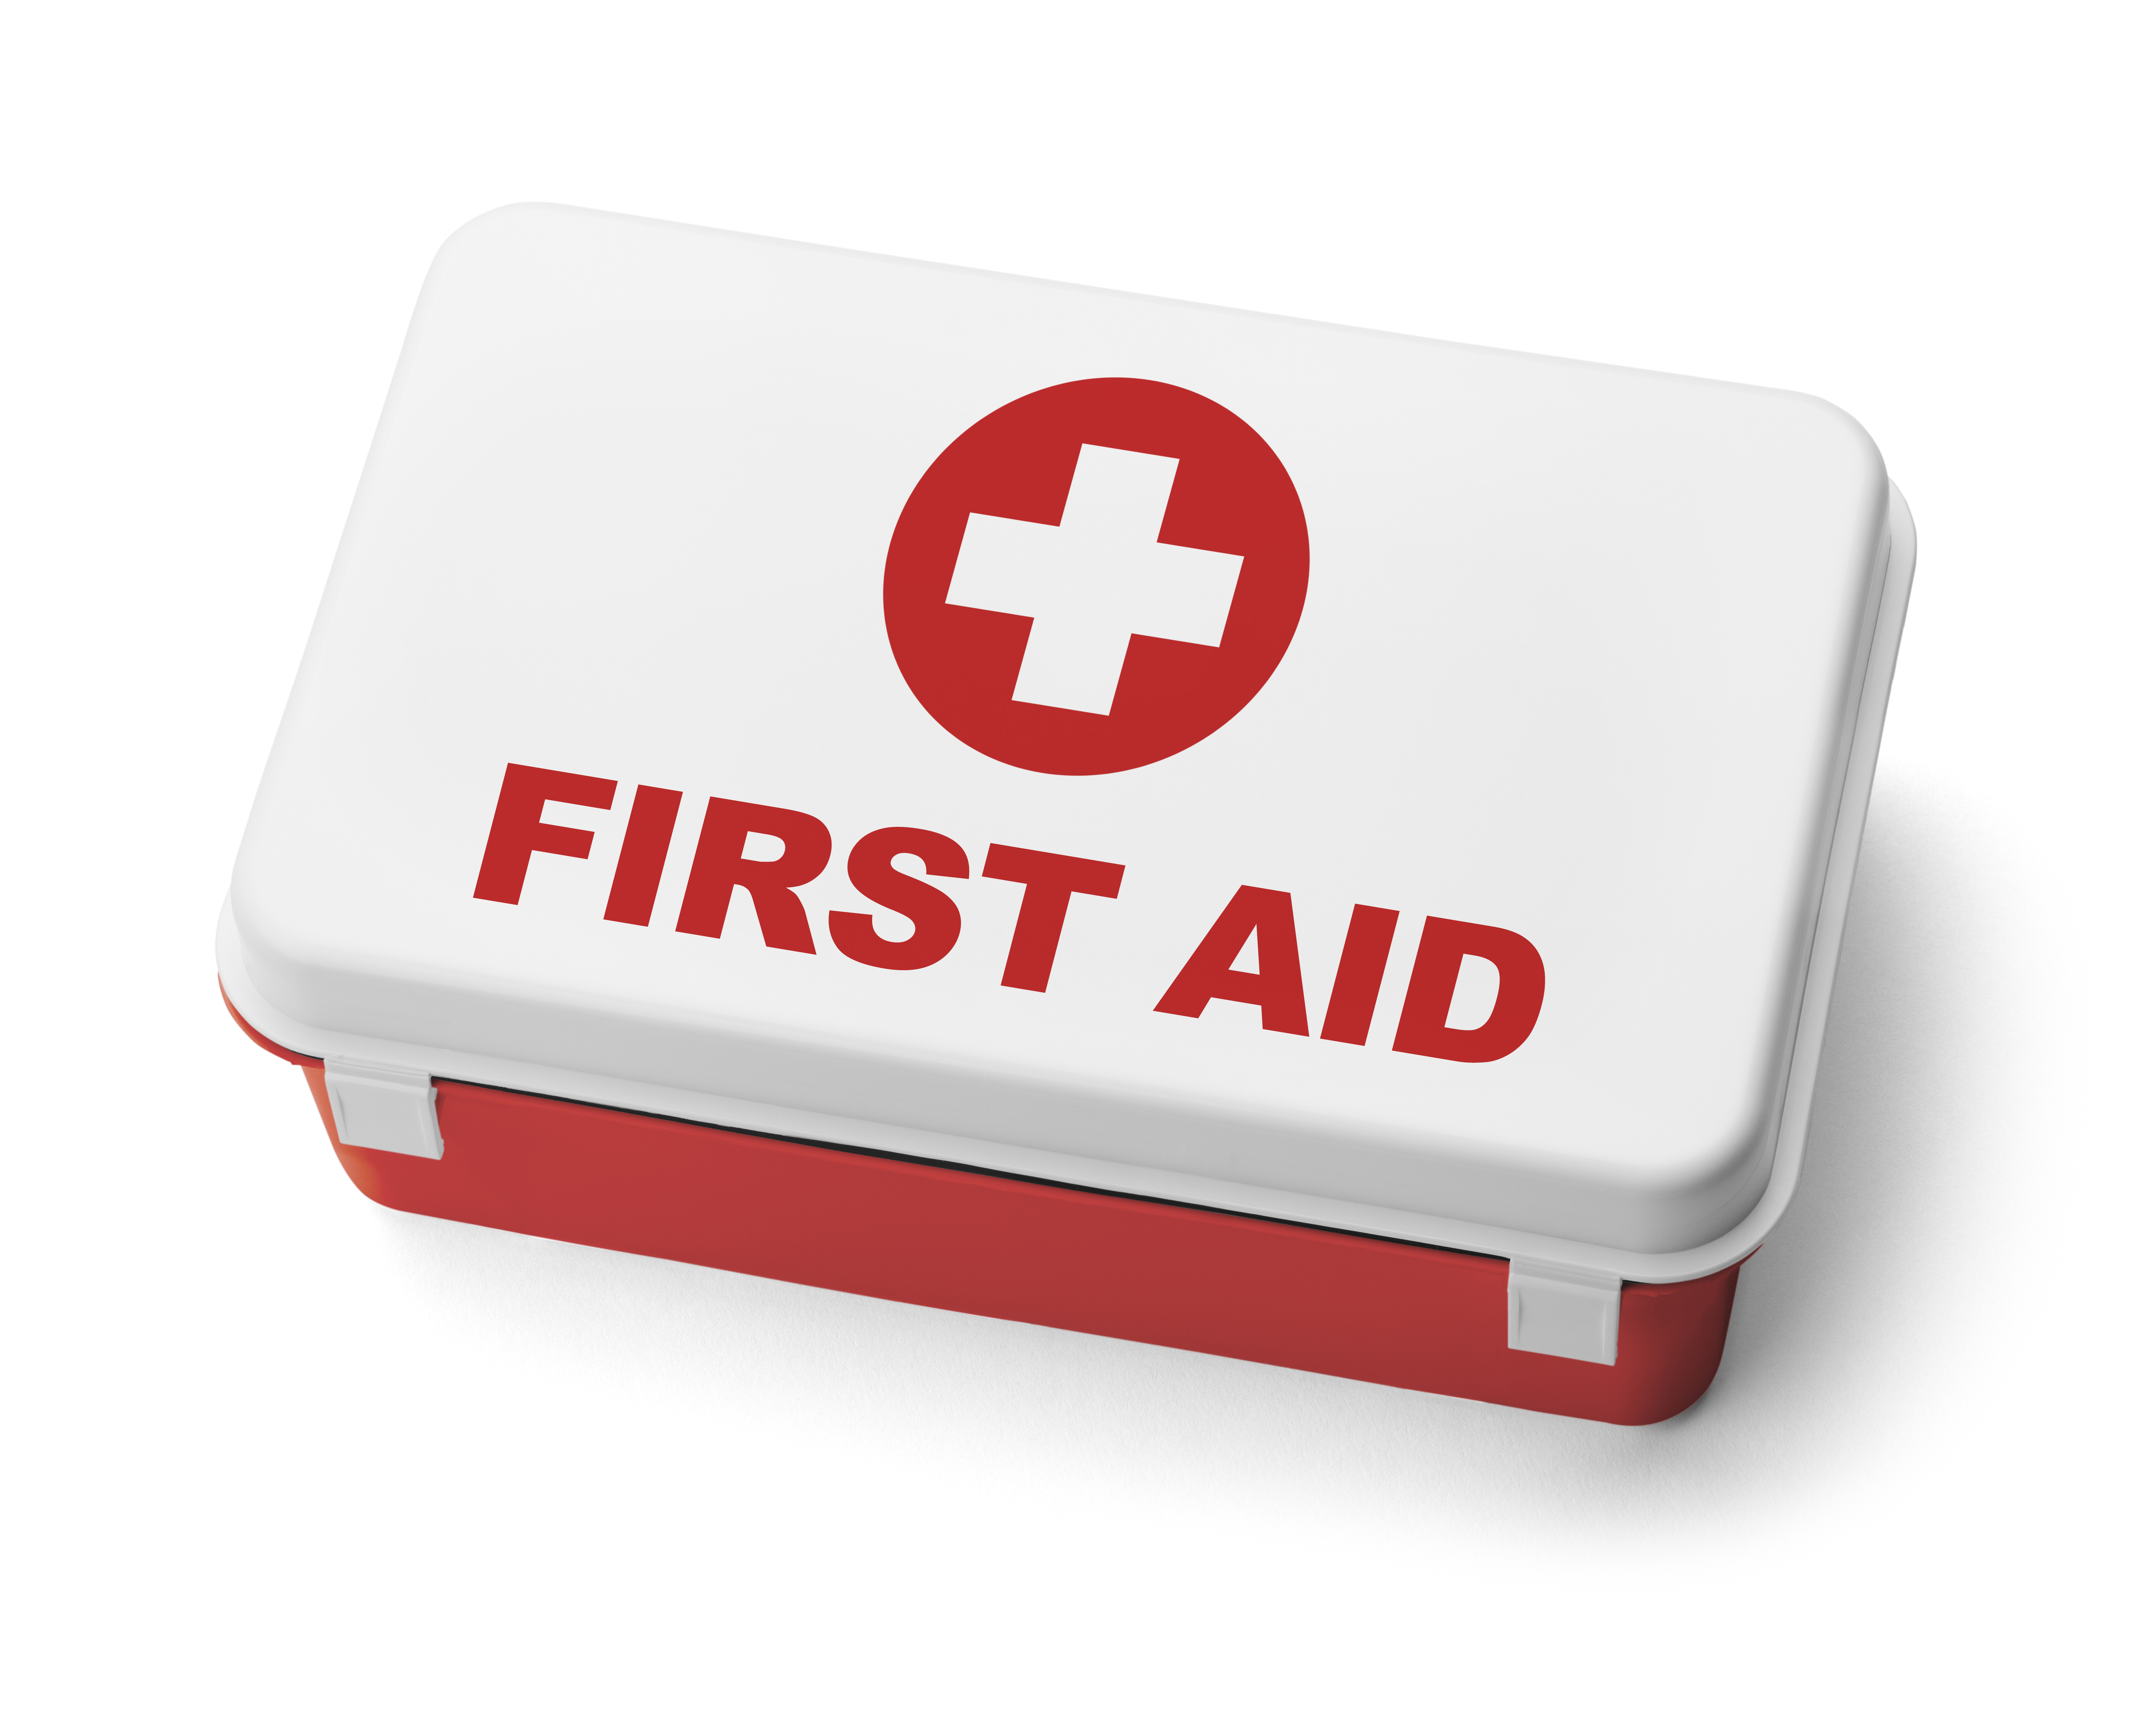 Red Plastic First Aid Kit Box Isolated on White Background.